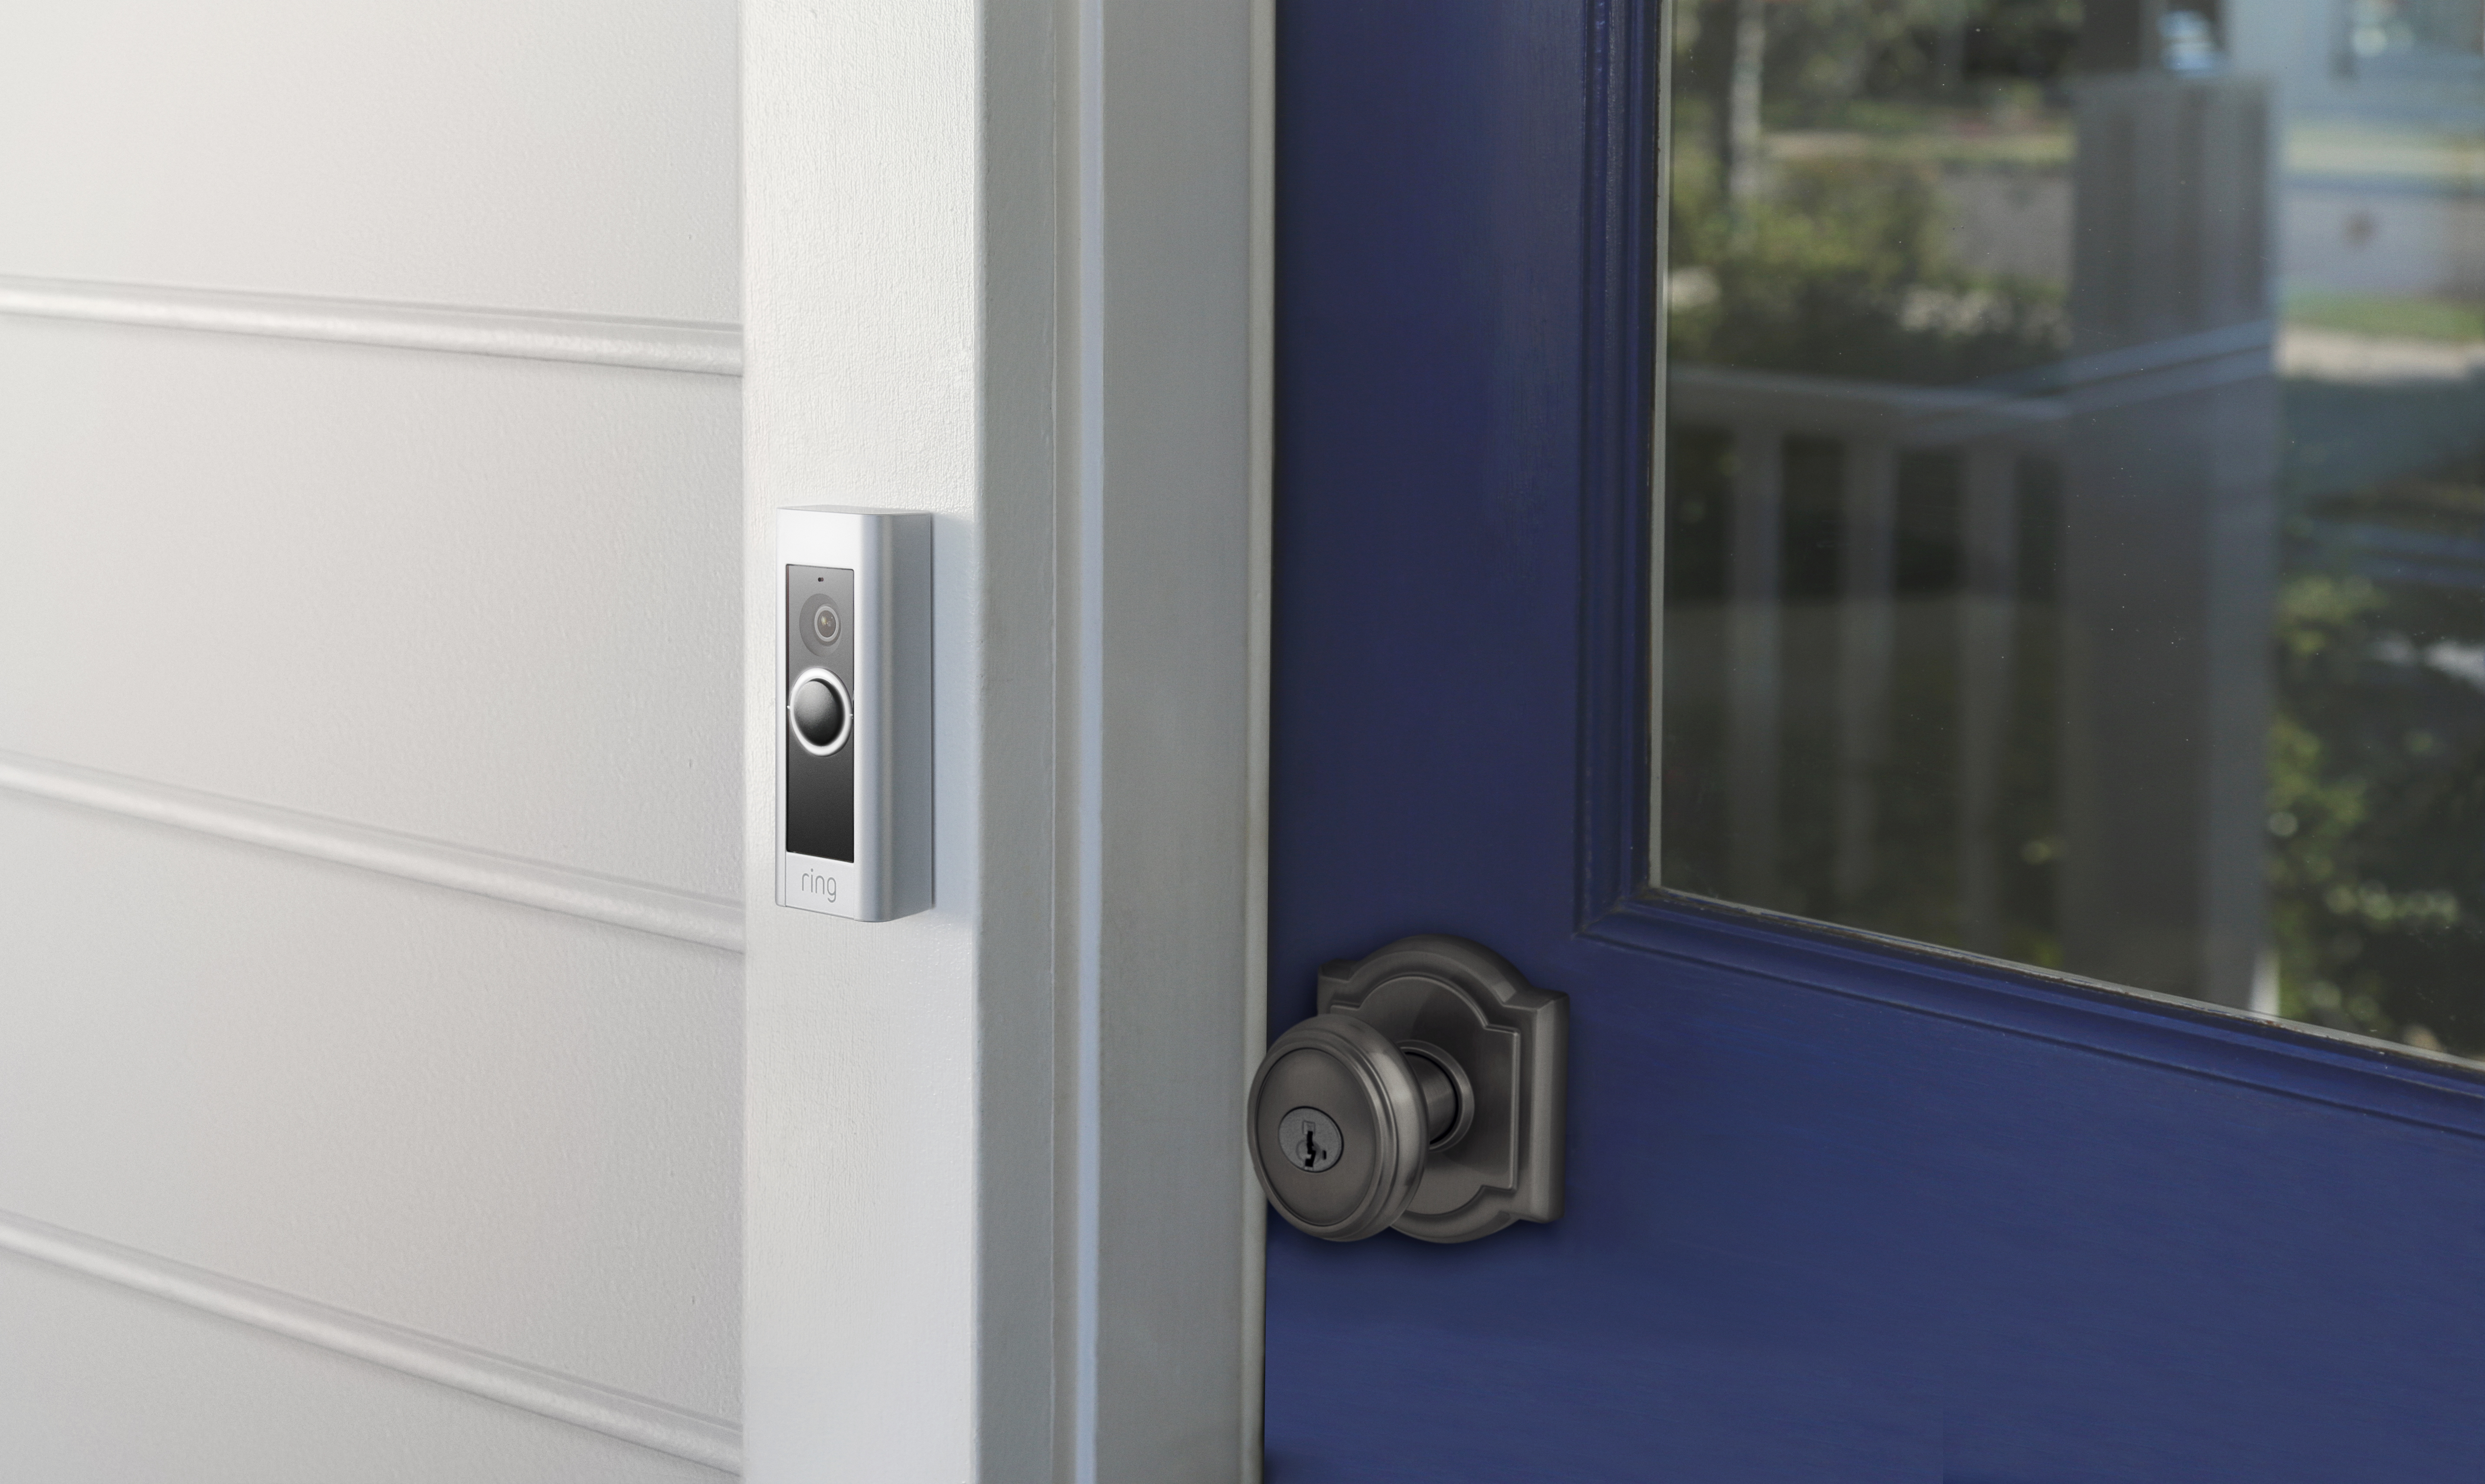 Ring Video Doorbells And Cameras Can Give You Peace Of Mind Wiring Door Chimes In Parallel Technology Dallas News